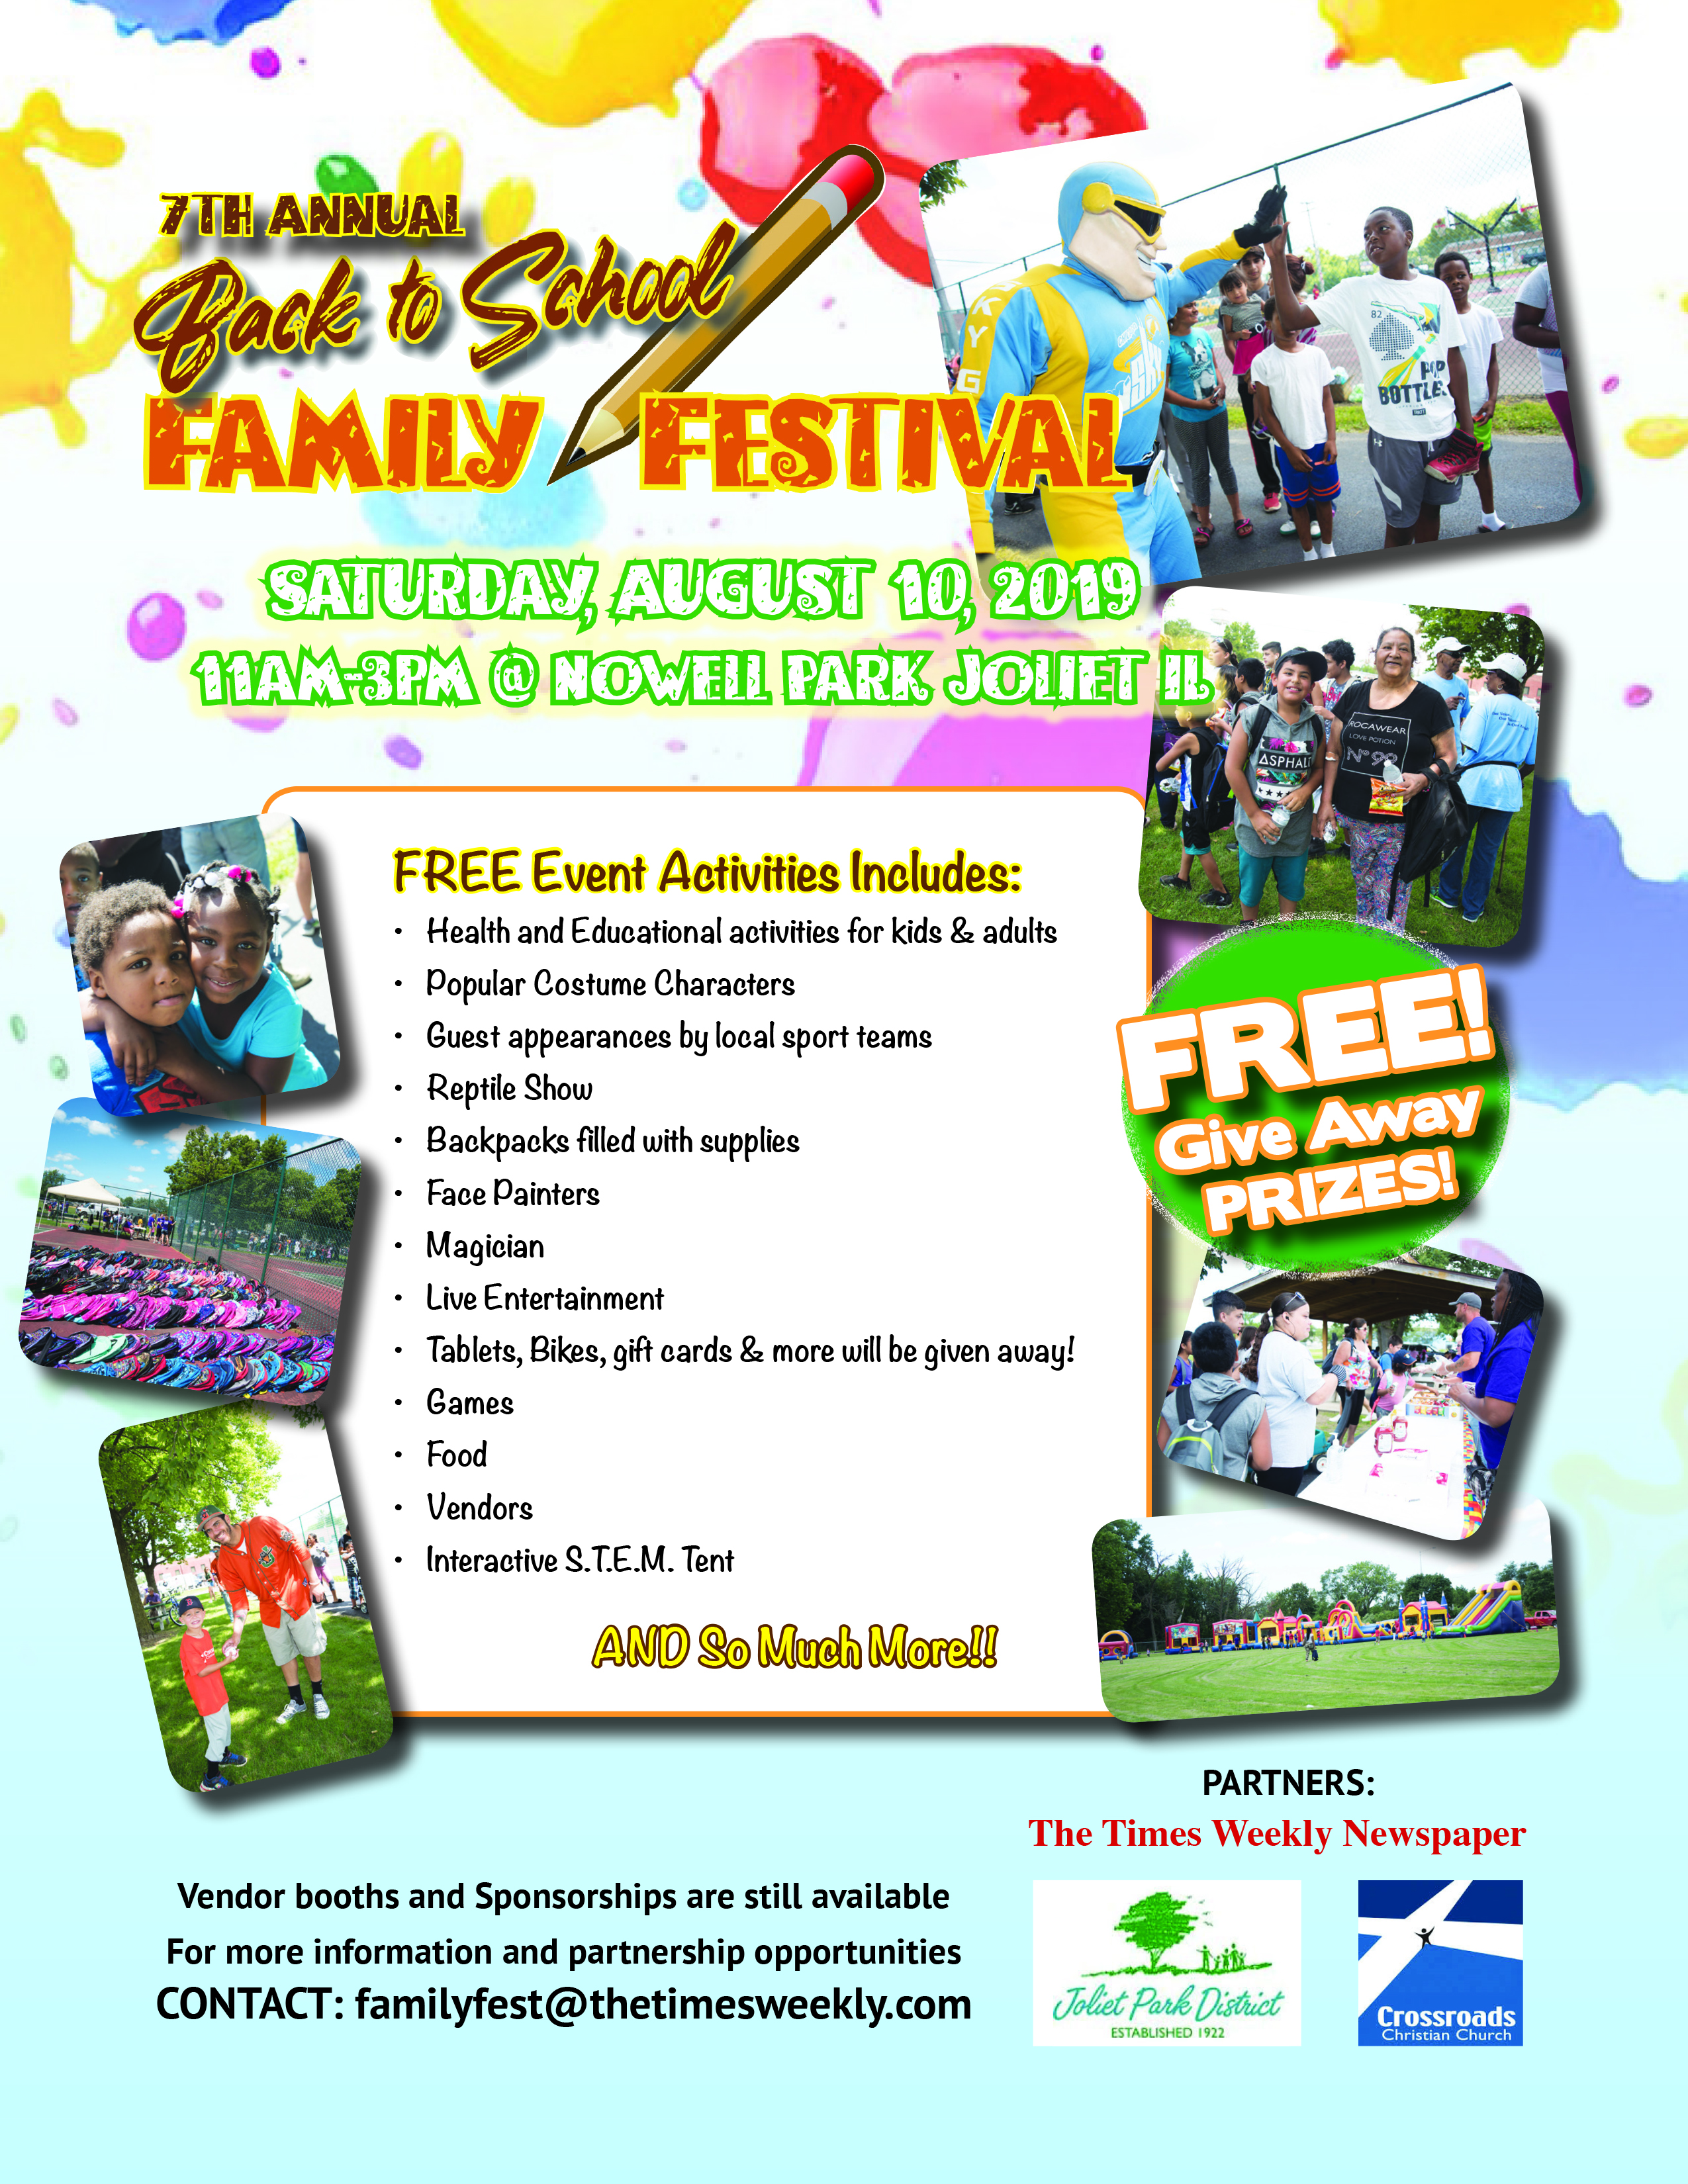 7th Annual Back to School Fest Saturday | The Times Weekly